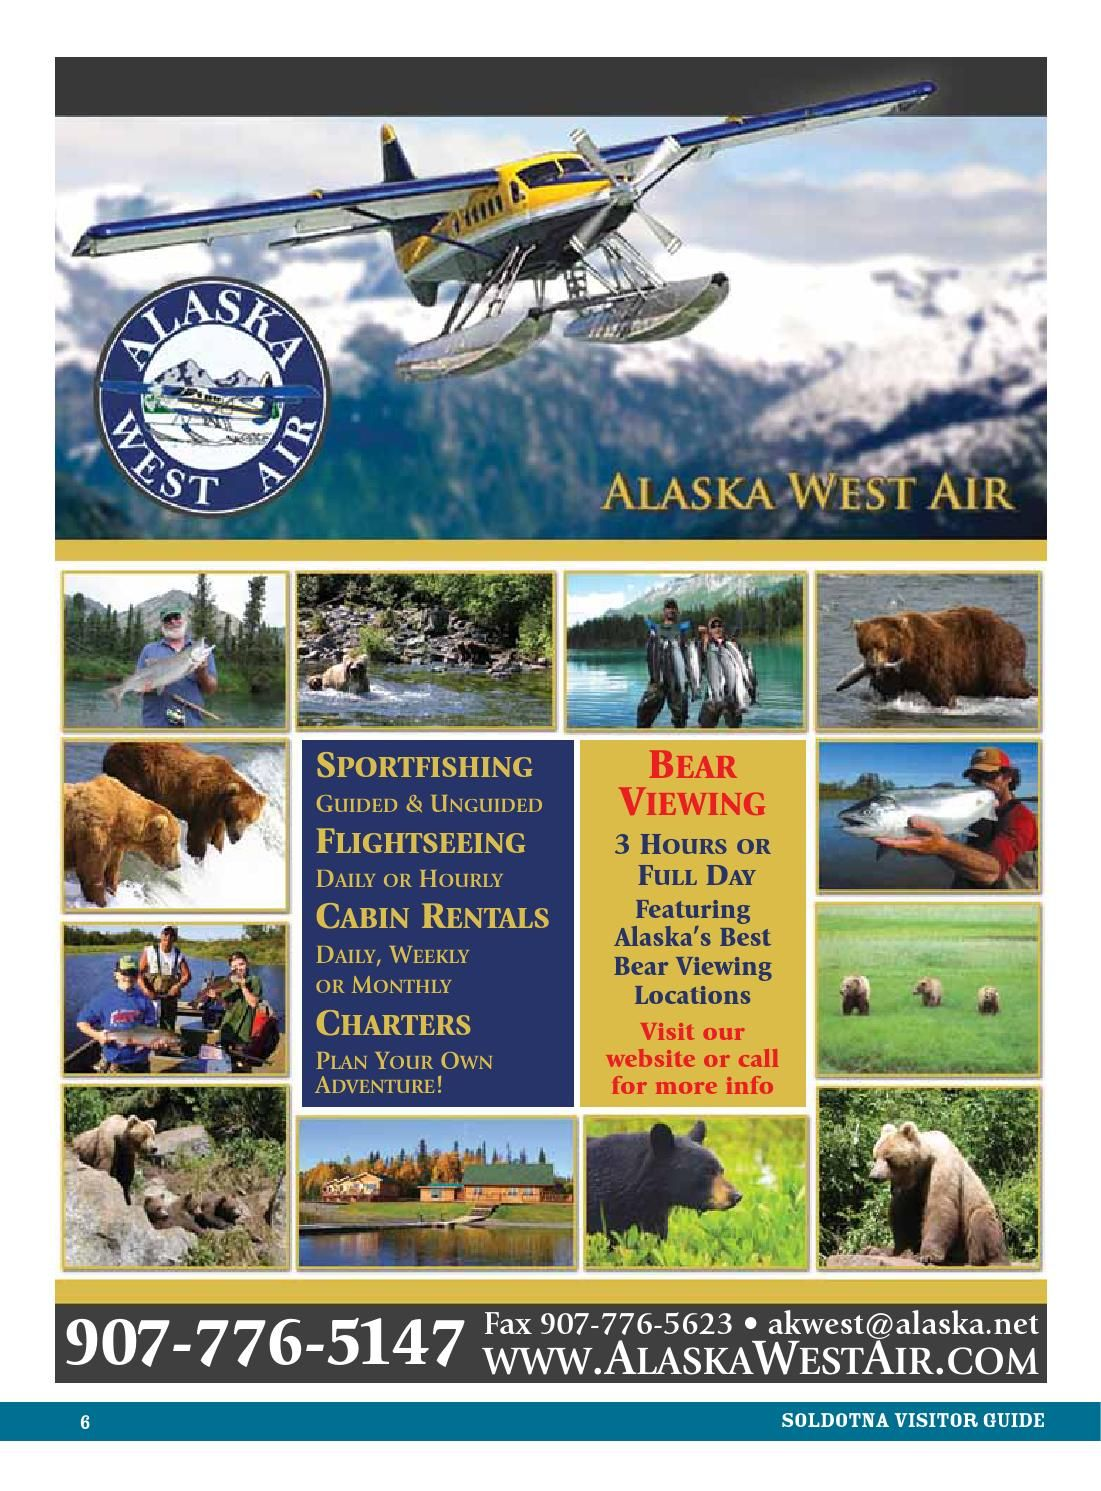 ISSUU Soldotna Alaska Visitor Guide by Soldotna Chamber of